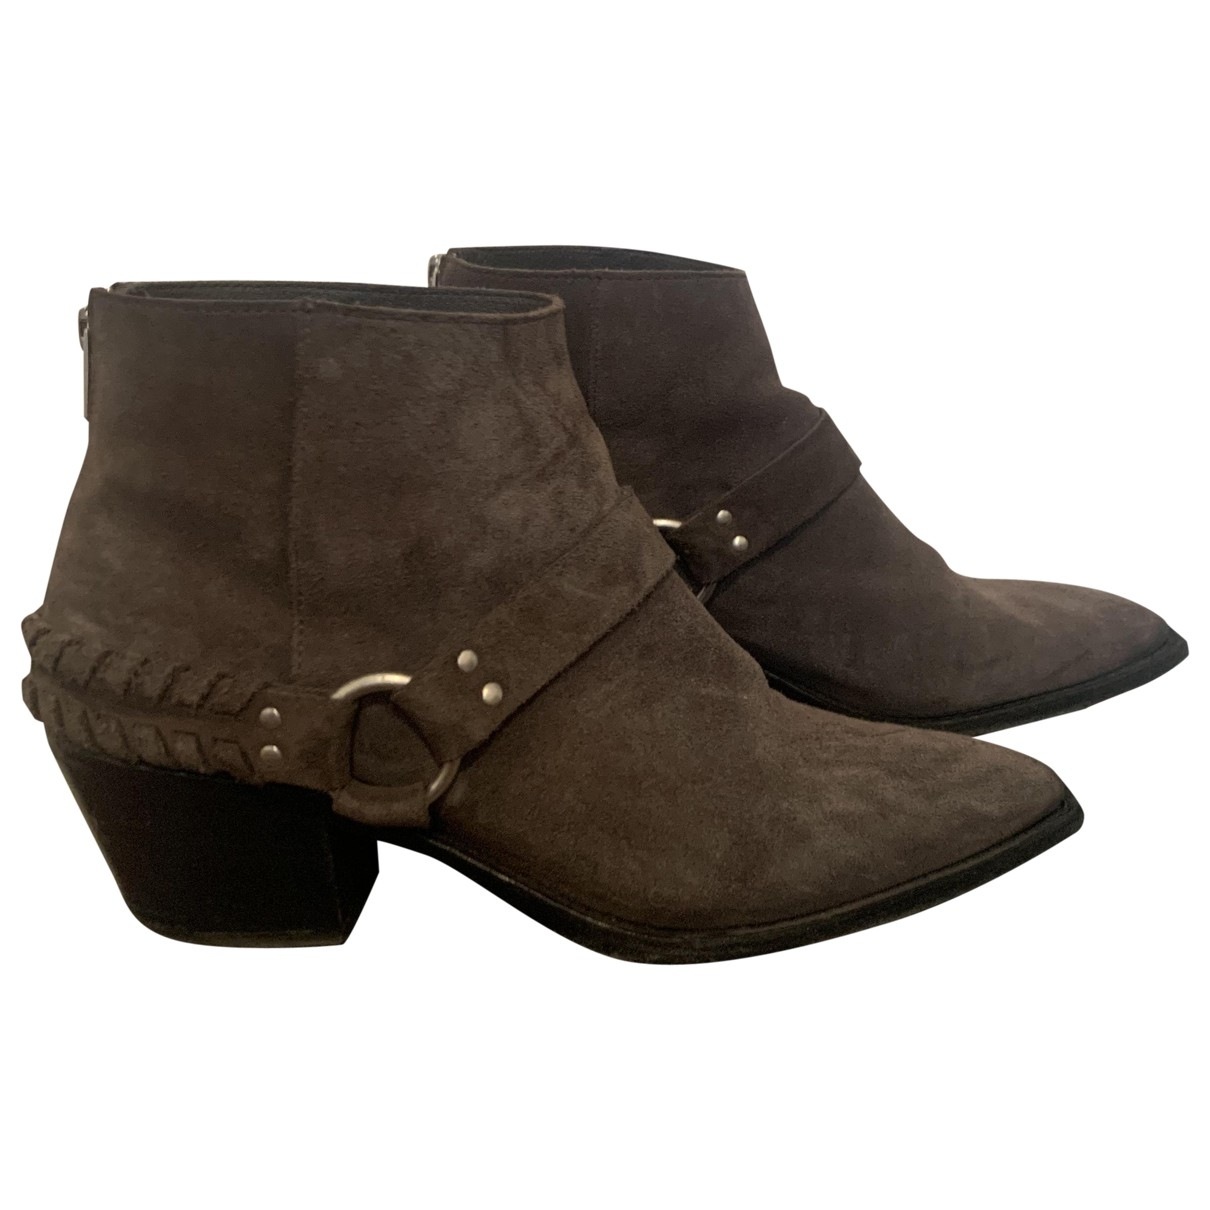 All Saints \N Grey Suede Boots for Women 40 EU